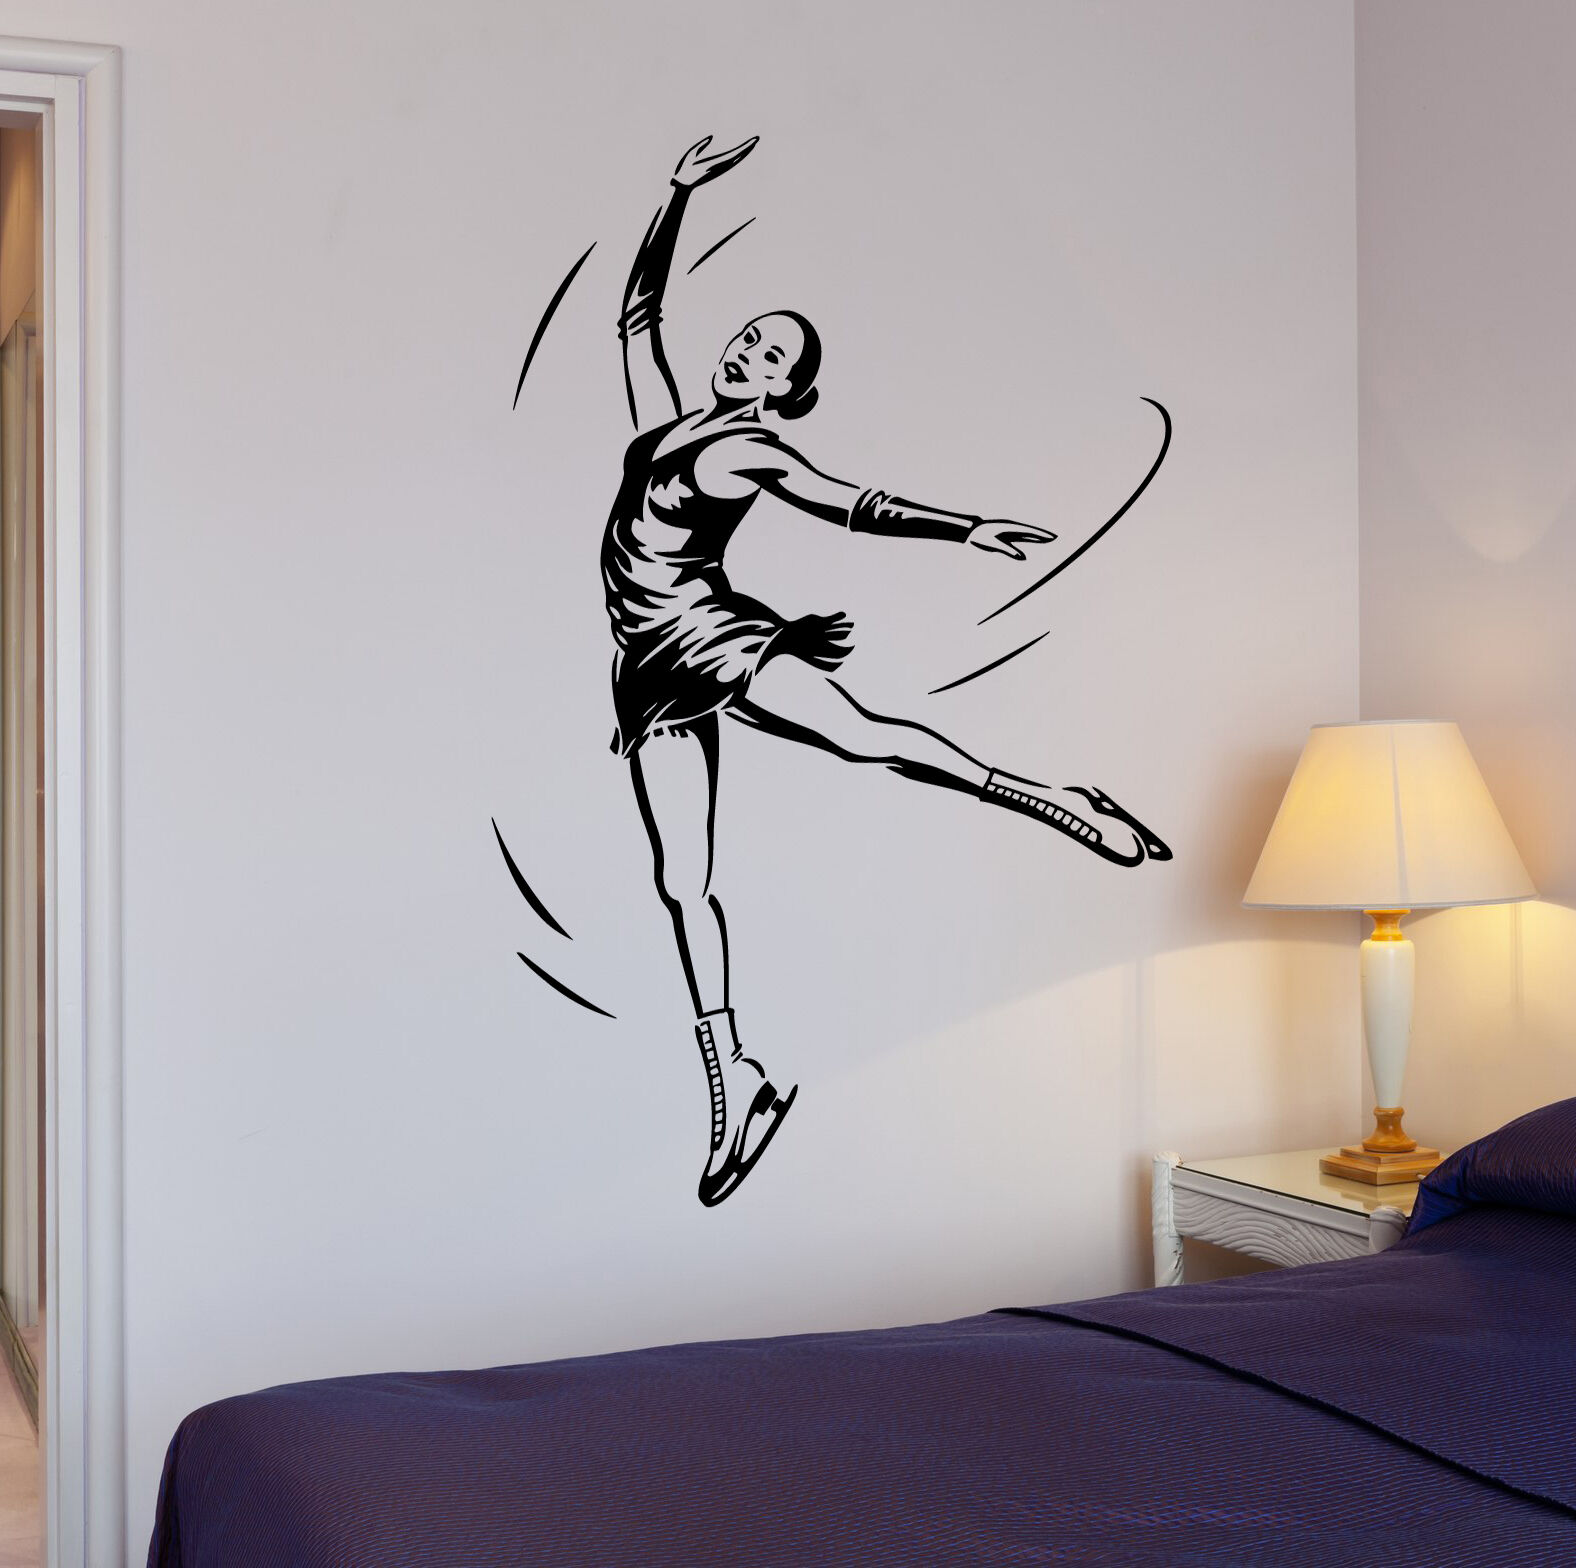 Wall decals stickers home decor home furniture diy wall stickers figure skating dance ice sports girl vinyl decal ig1970 amipublicfo Images